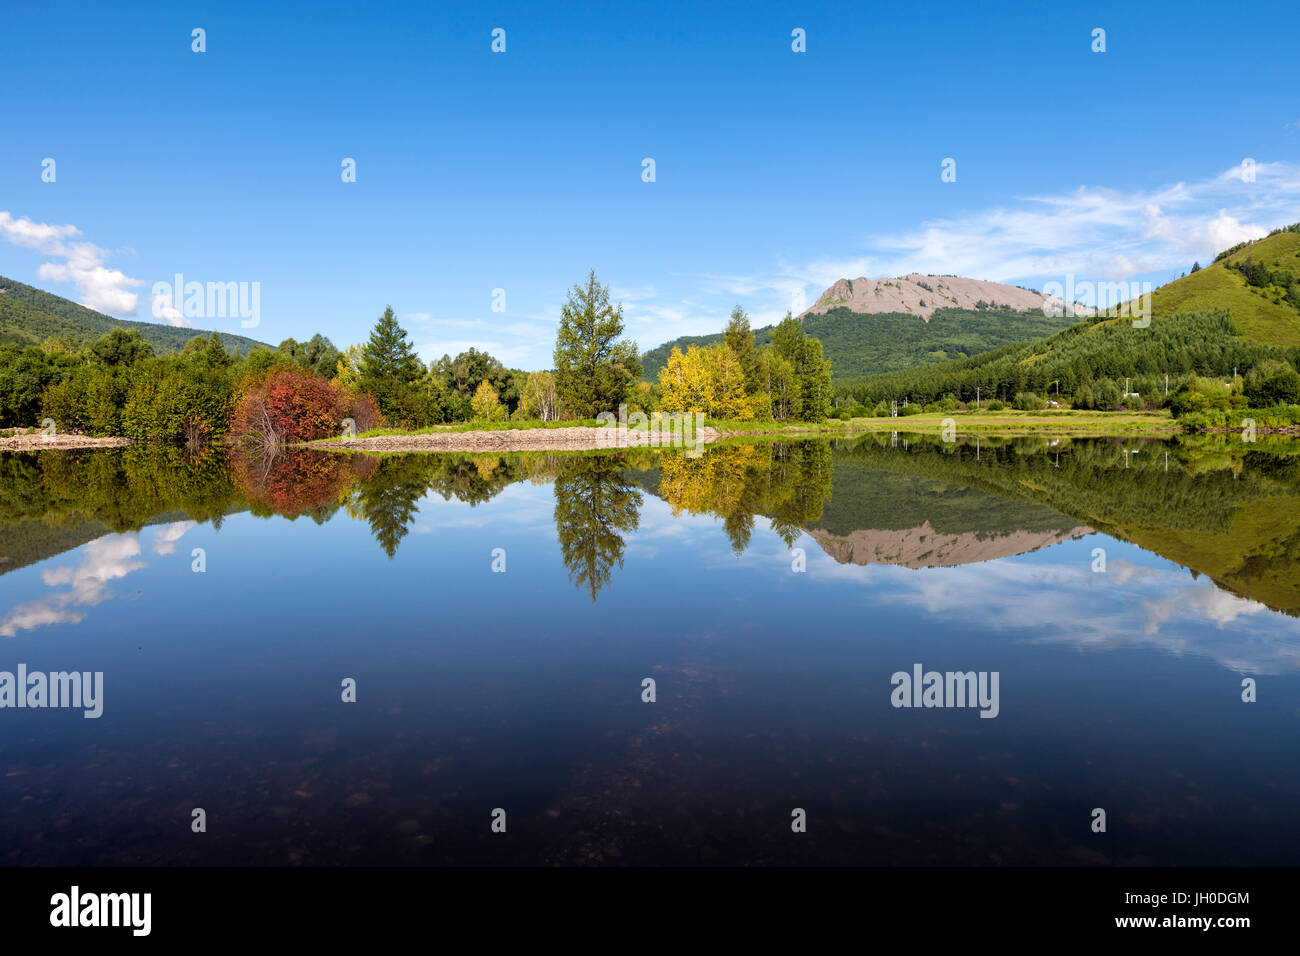 Arxan,Inner mongolia,China - Stock Image